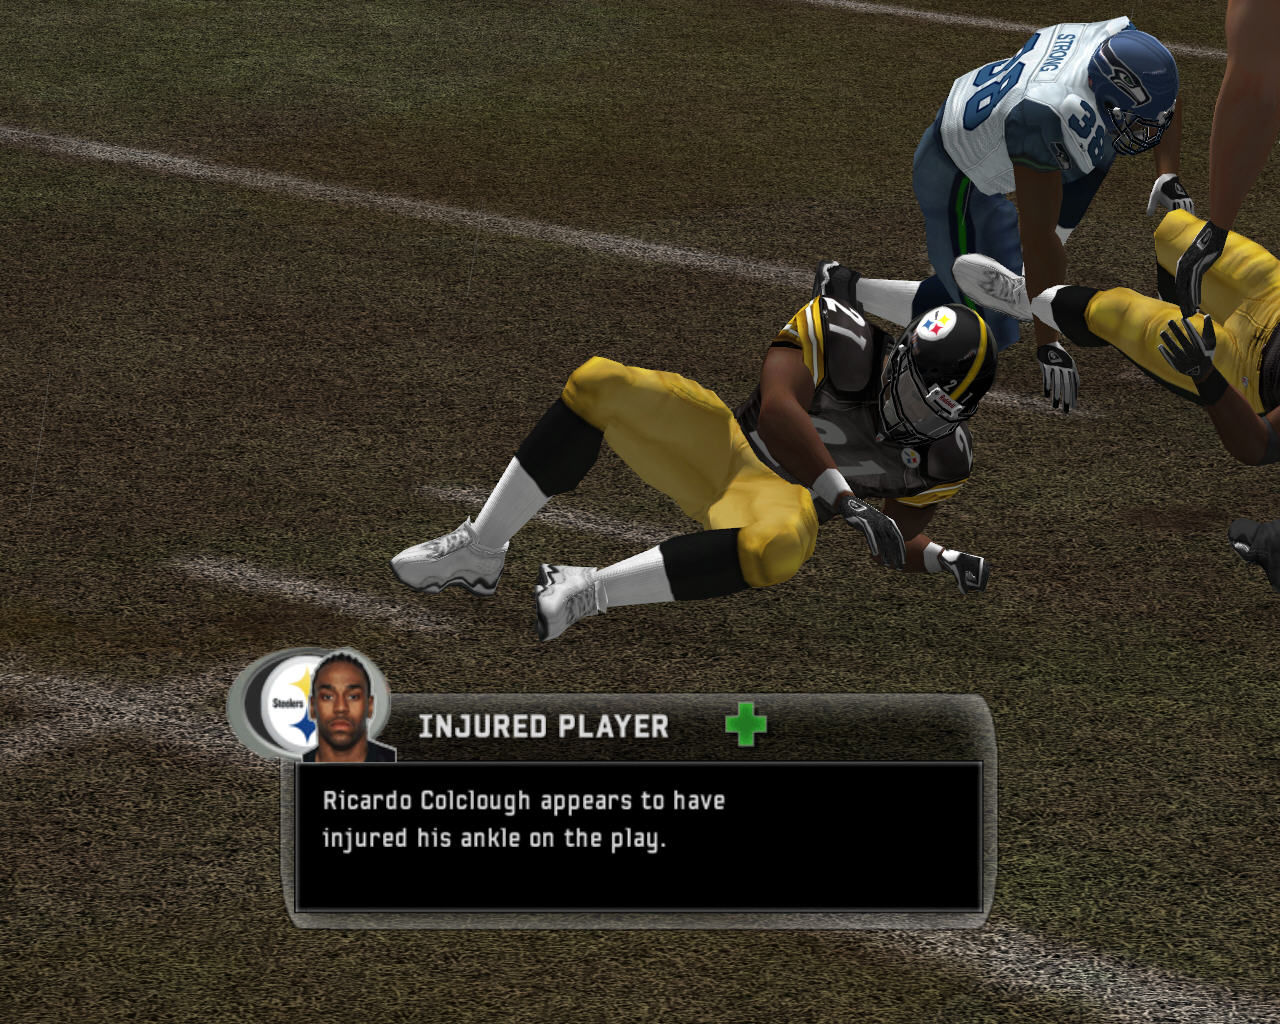 Madden NFL 07 Windows Player injured.